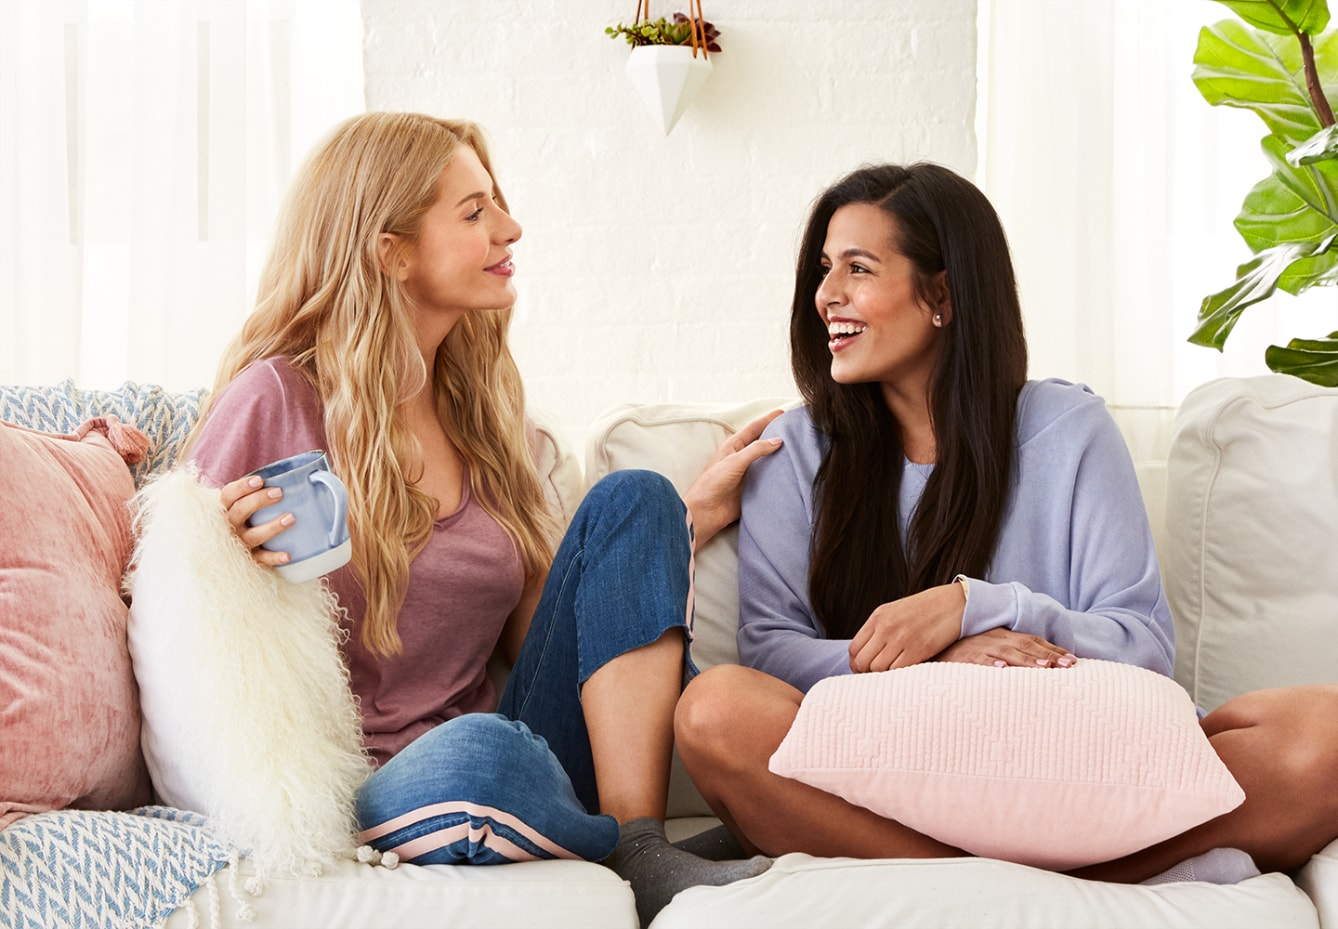 Two women chatting on a couch enjoying the results of Suave®